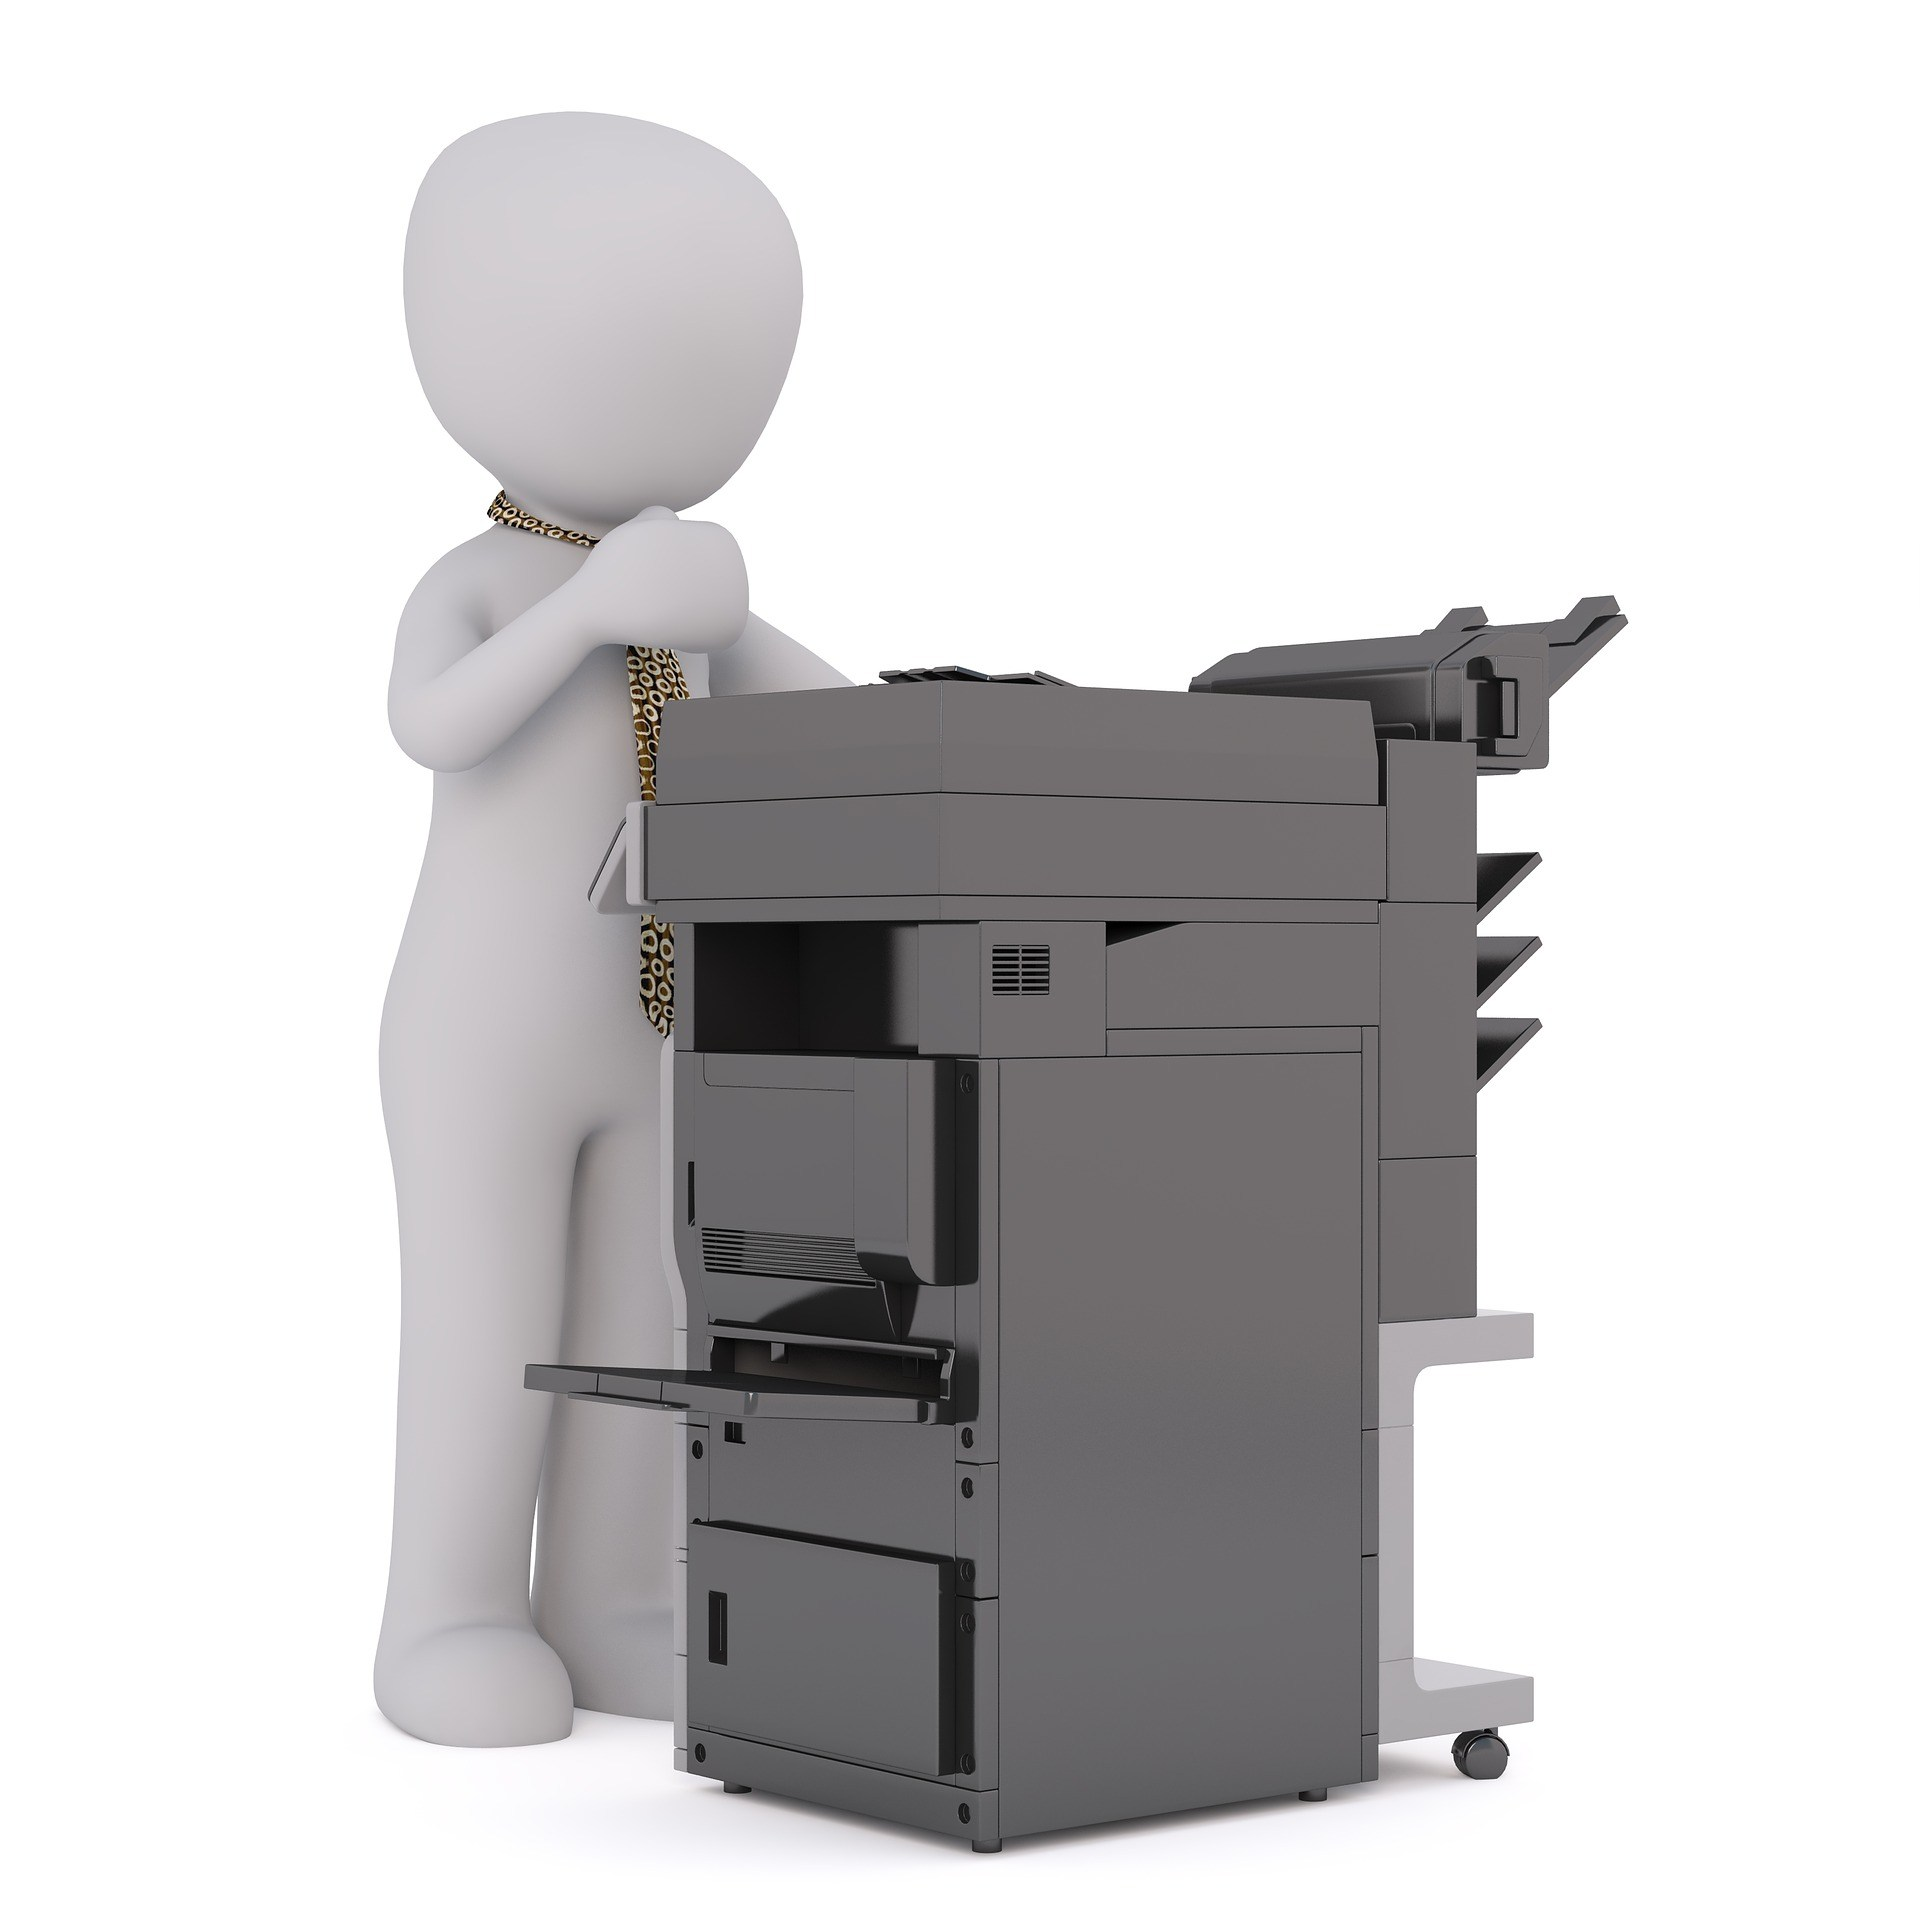 What is the difference between offset printing and digital printing?